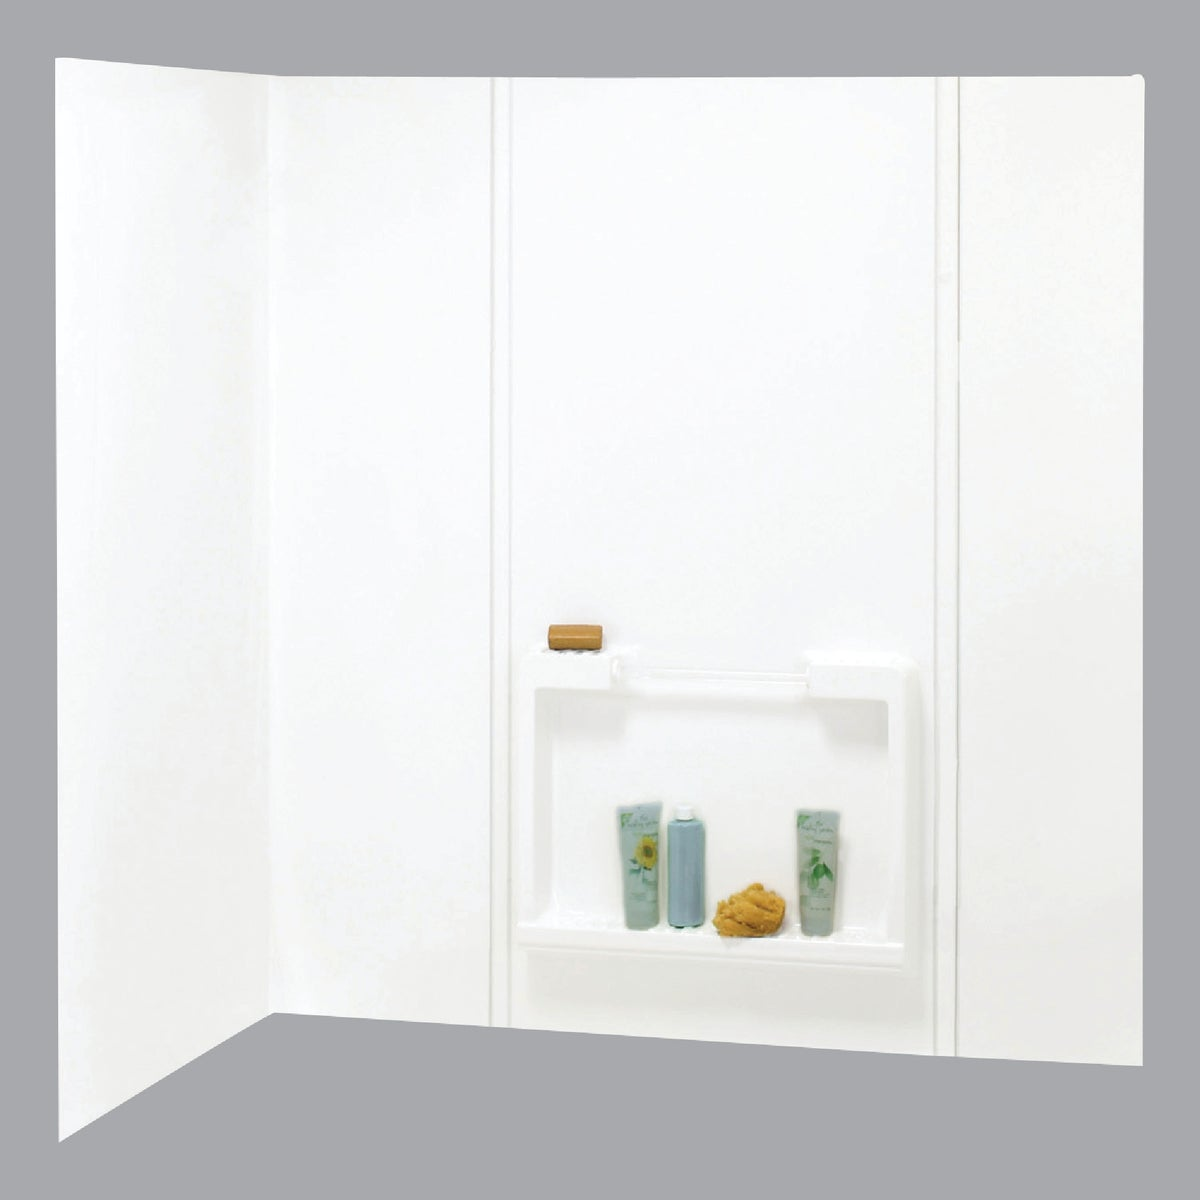 5PC  WHITE TUB WALL KIT - 101596-129 by Maax Bath